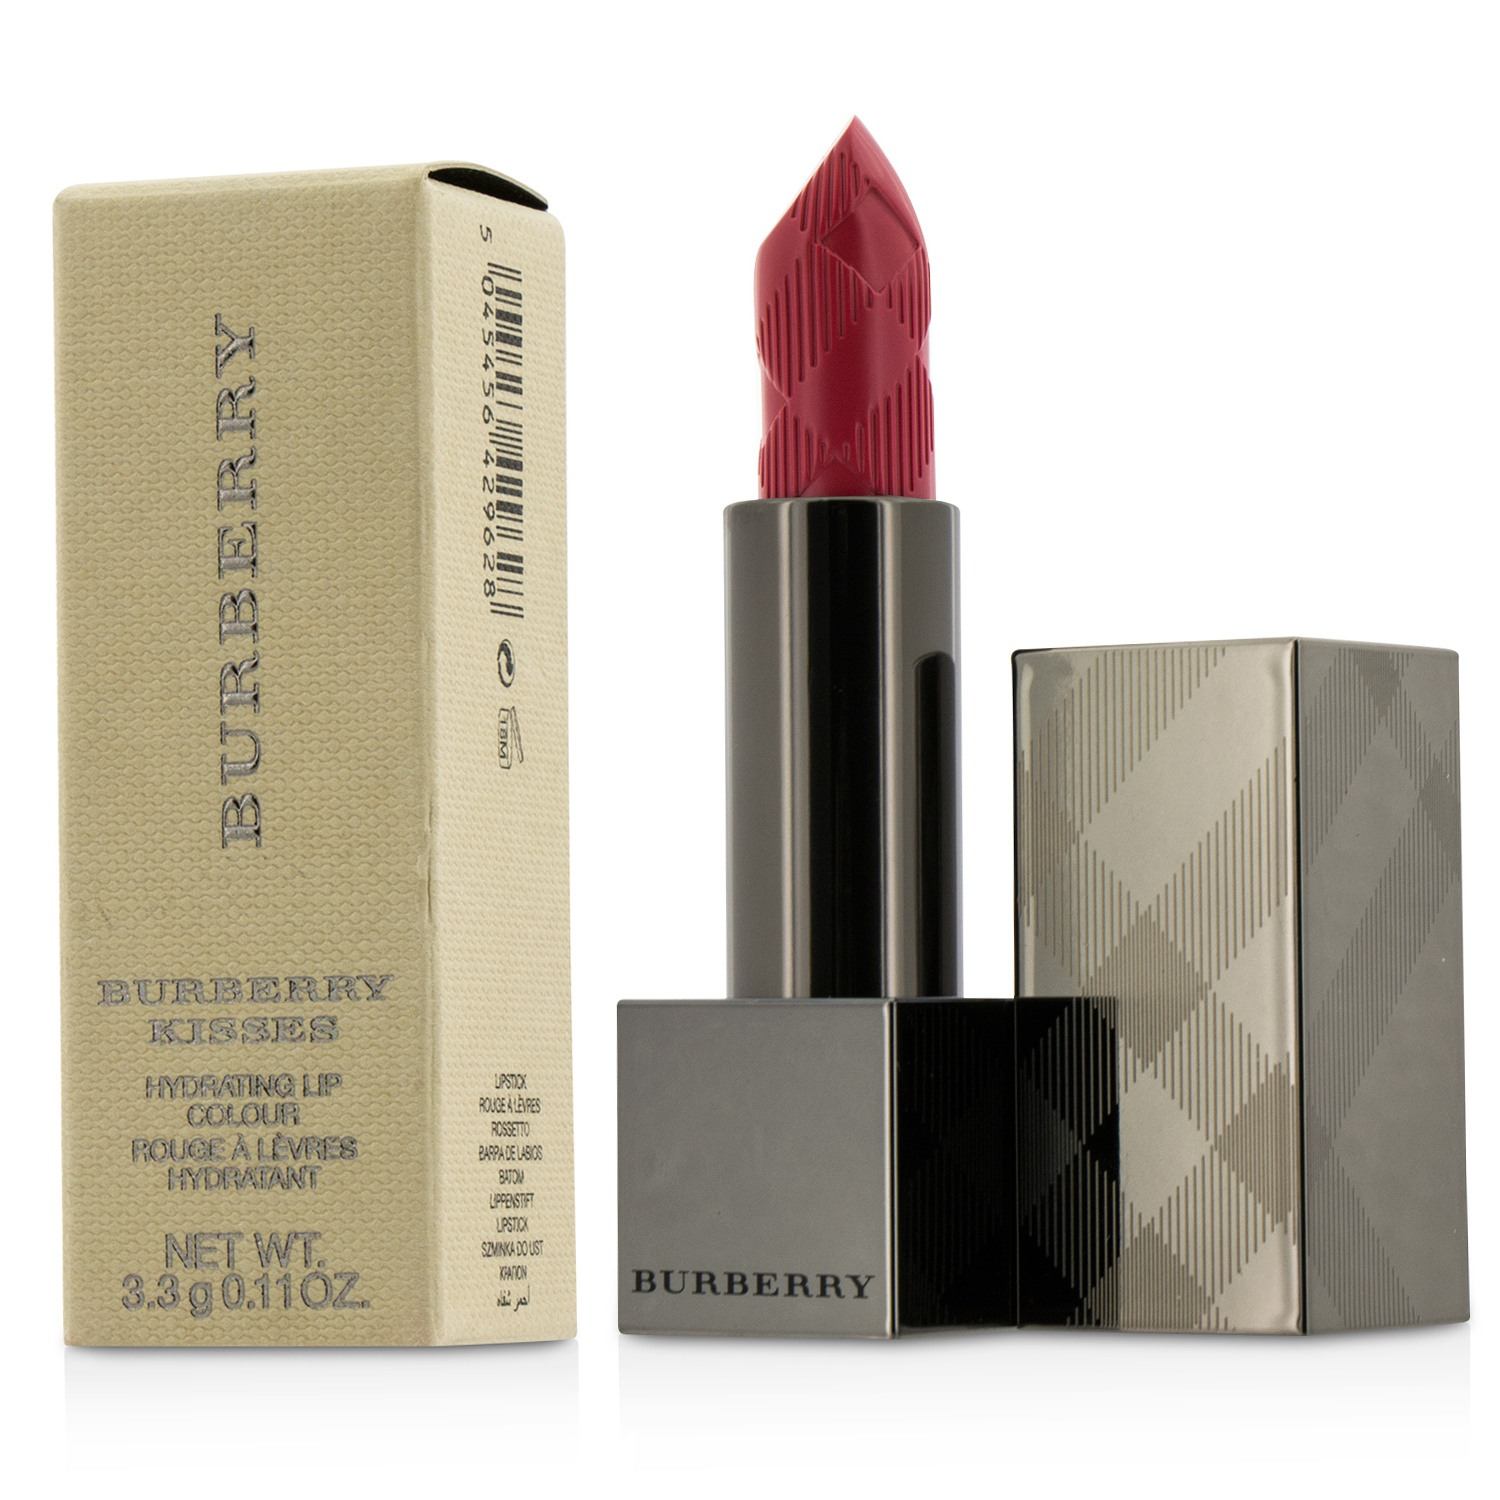 Burberry Kisses Hydrating Lip Colour - # No. 45 Claret Pink Burberry Image